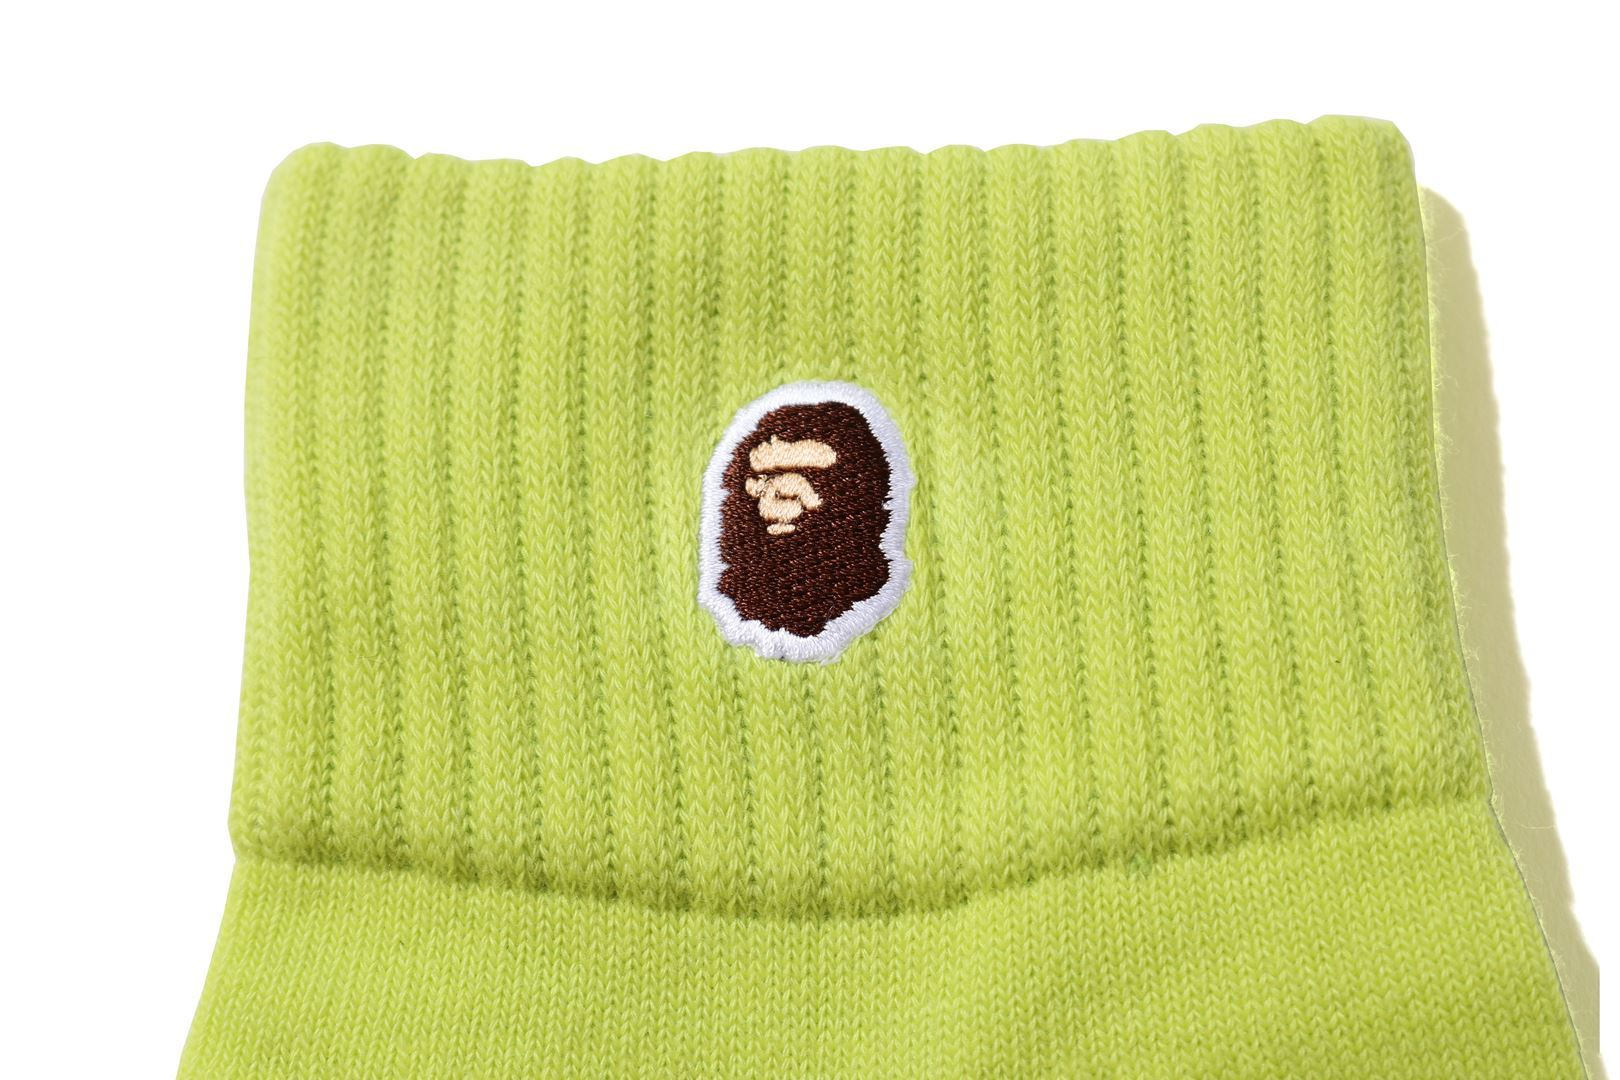 APE HEAD ONE POINT ANKLE SOCKS_a0174495_11551899.jpg